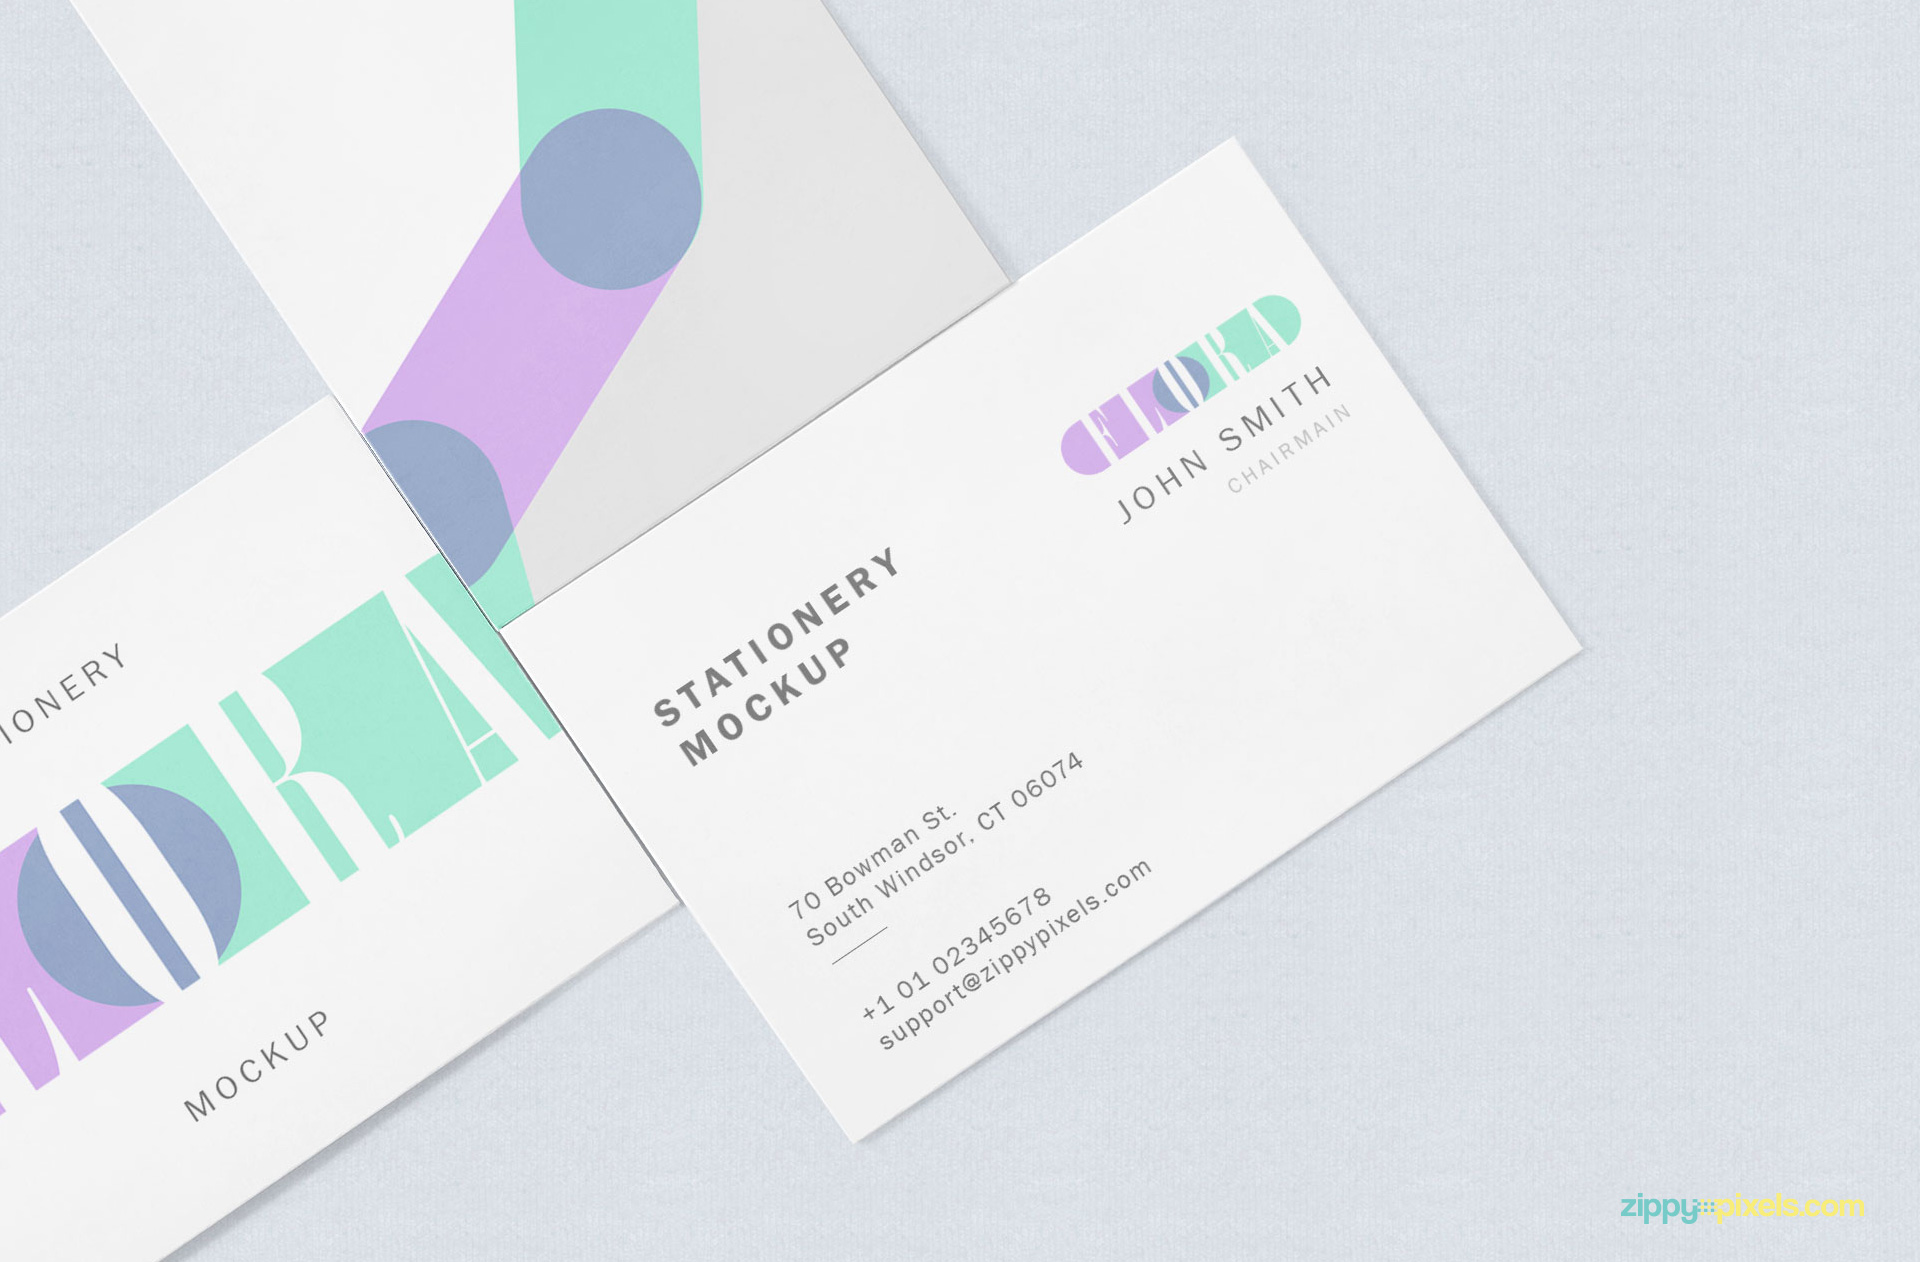 Zoom in view of visiting card mockup.